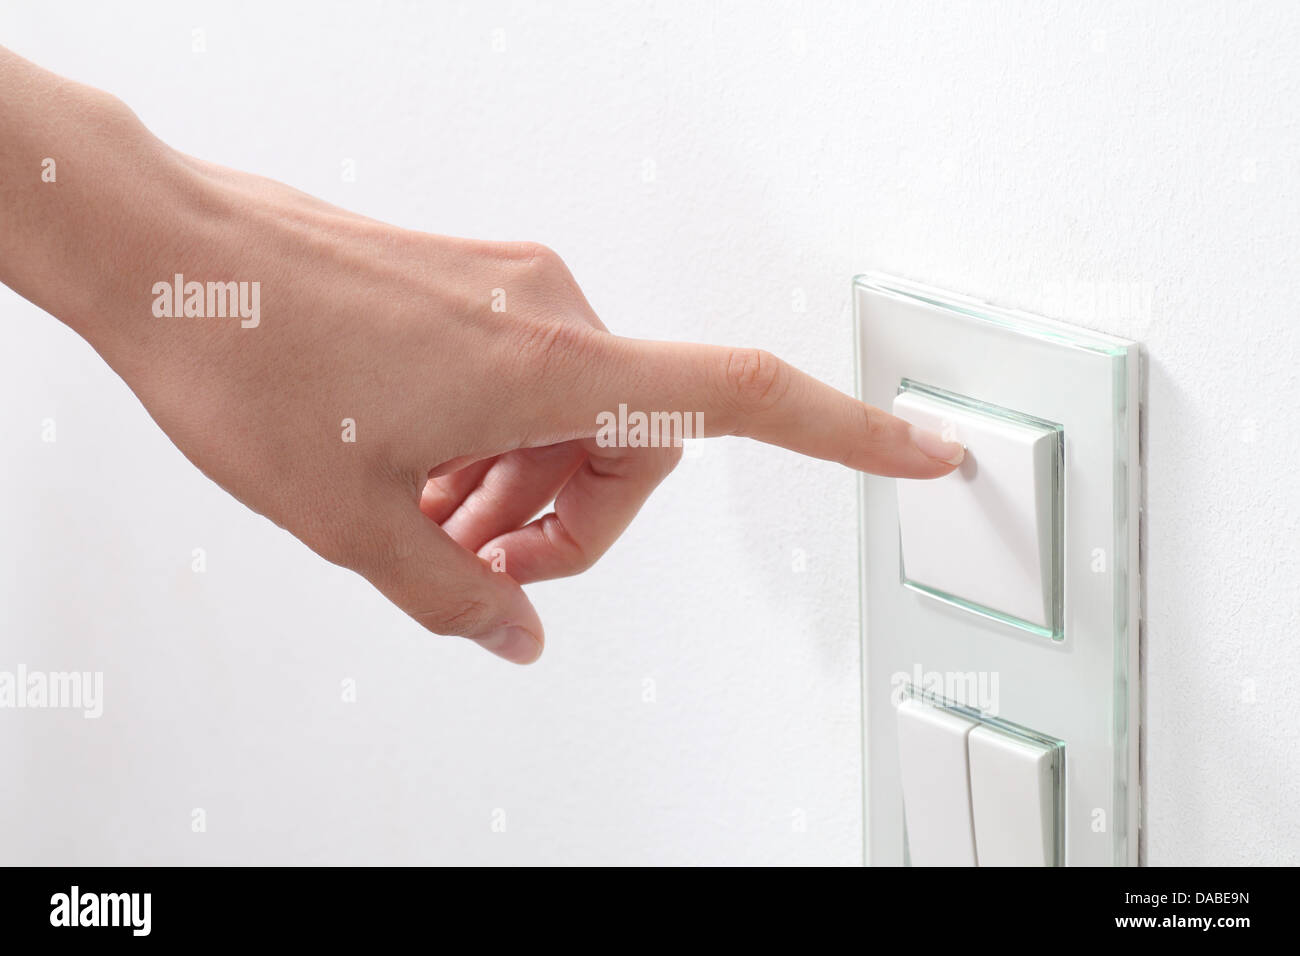 Woman hand turning on the light with a wall switch - Stock Image